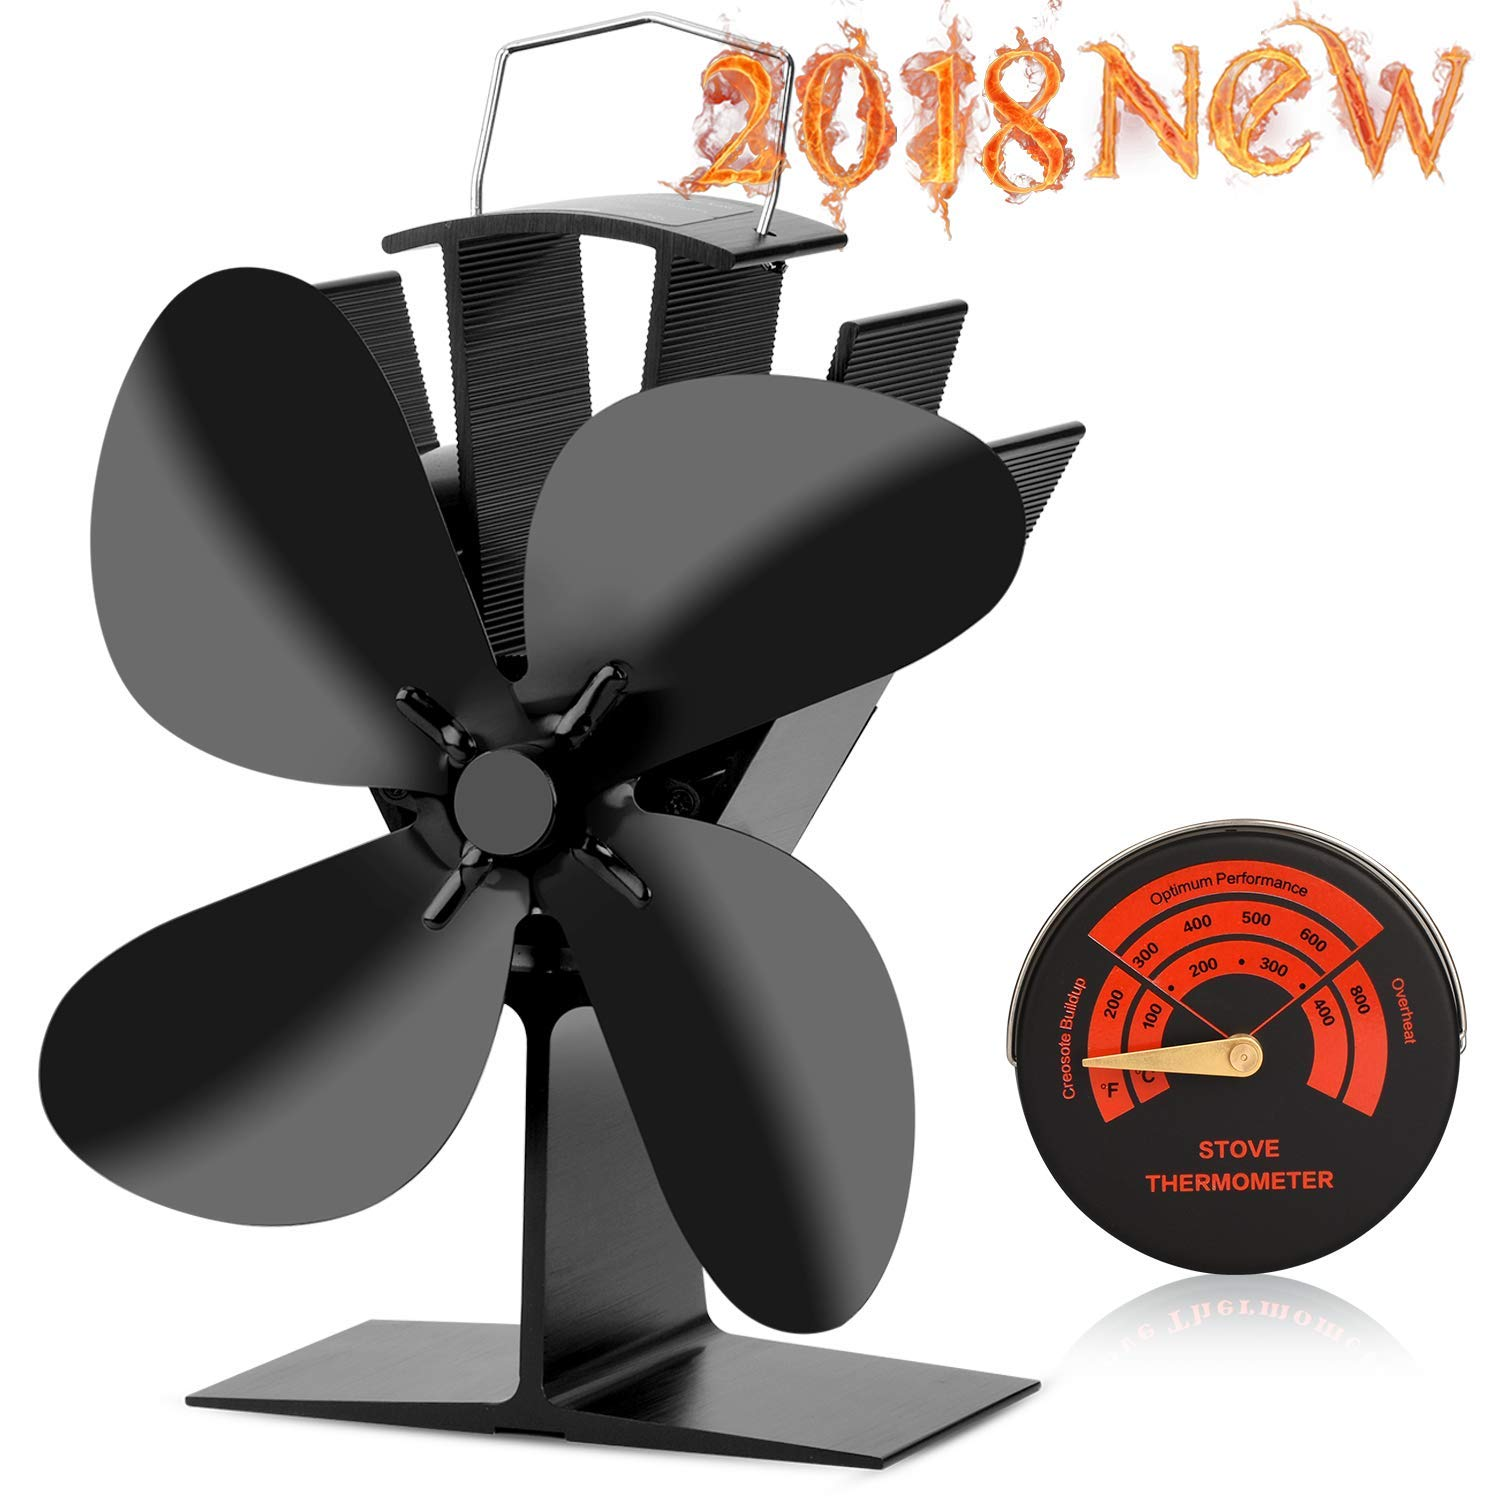 CWLAKON Heat Powered Stove Fan-2018 Upgrade Designed Silent Operation 4 Blades with Stove Thermometer for Wood/Log Burner/Fireplace-Eco Friendly and Efficient Heat Distribution(Black)